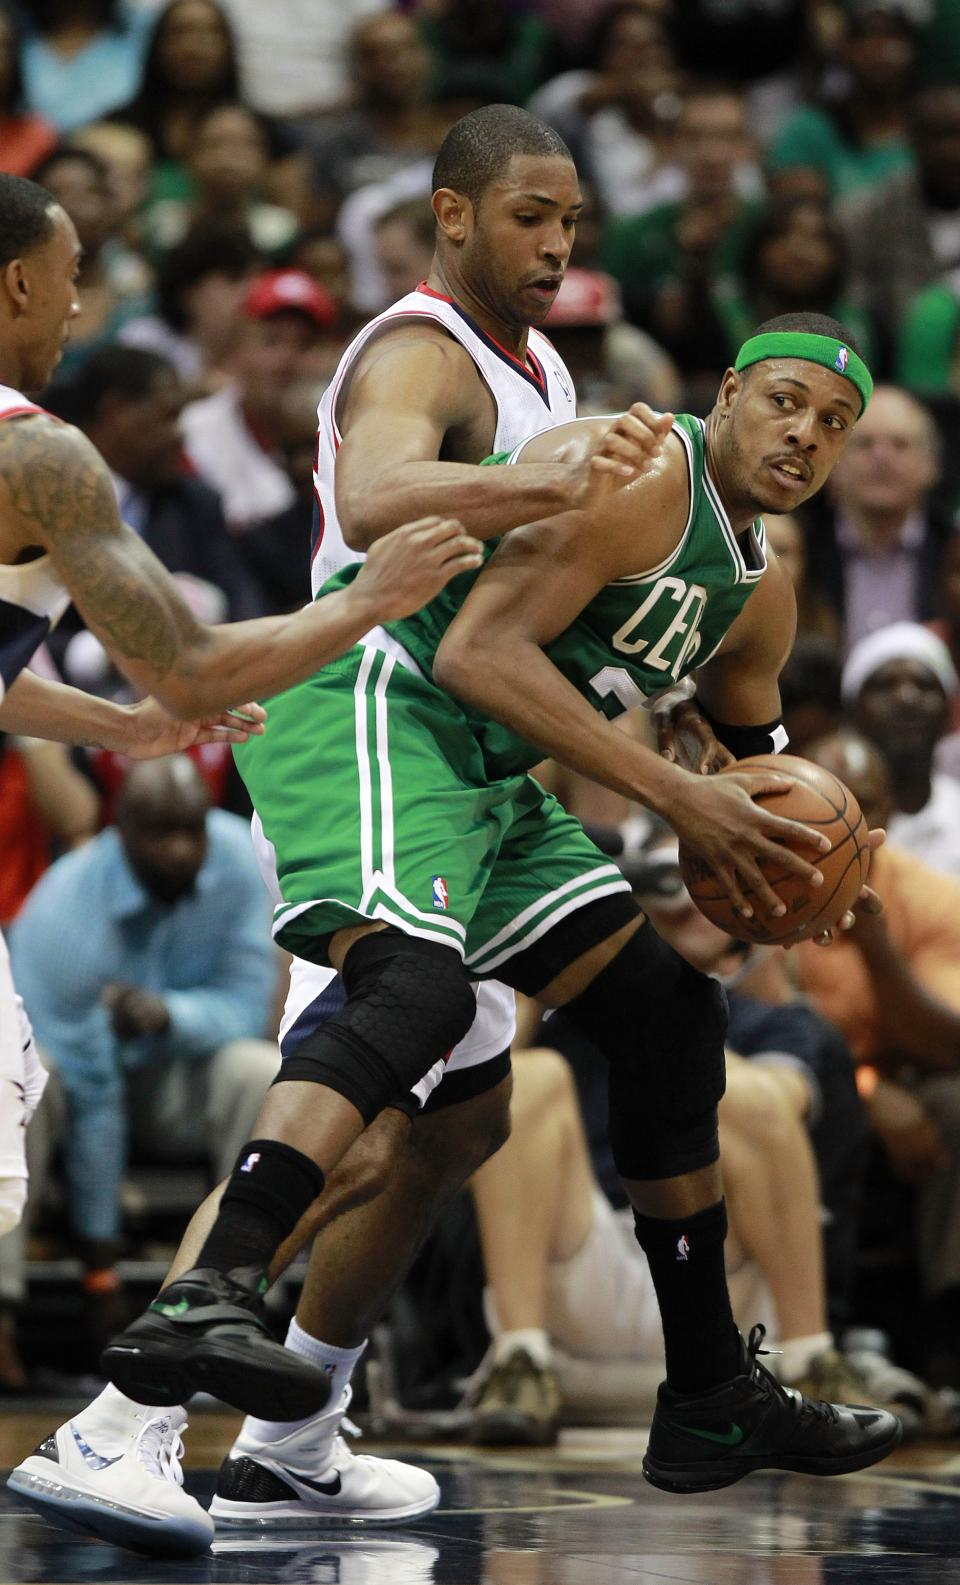 Boston Celtics small forward Paul Pierce (34) is covered by Atlanta Hawks center Al Horford (15) during the first half of Game 5 of an NBA first-round playoff series basketball game Tuesday, May 8, 2012, in Atlanta. (AP Photo/John Bazemore)